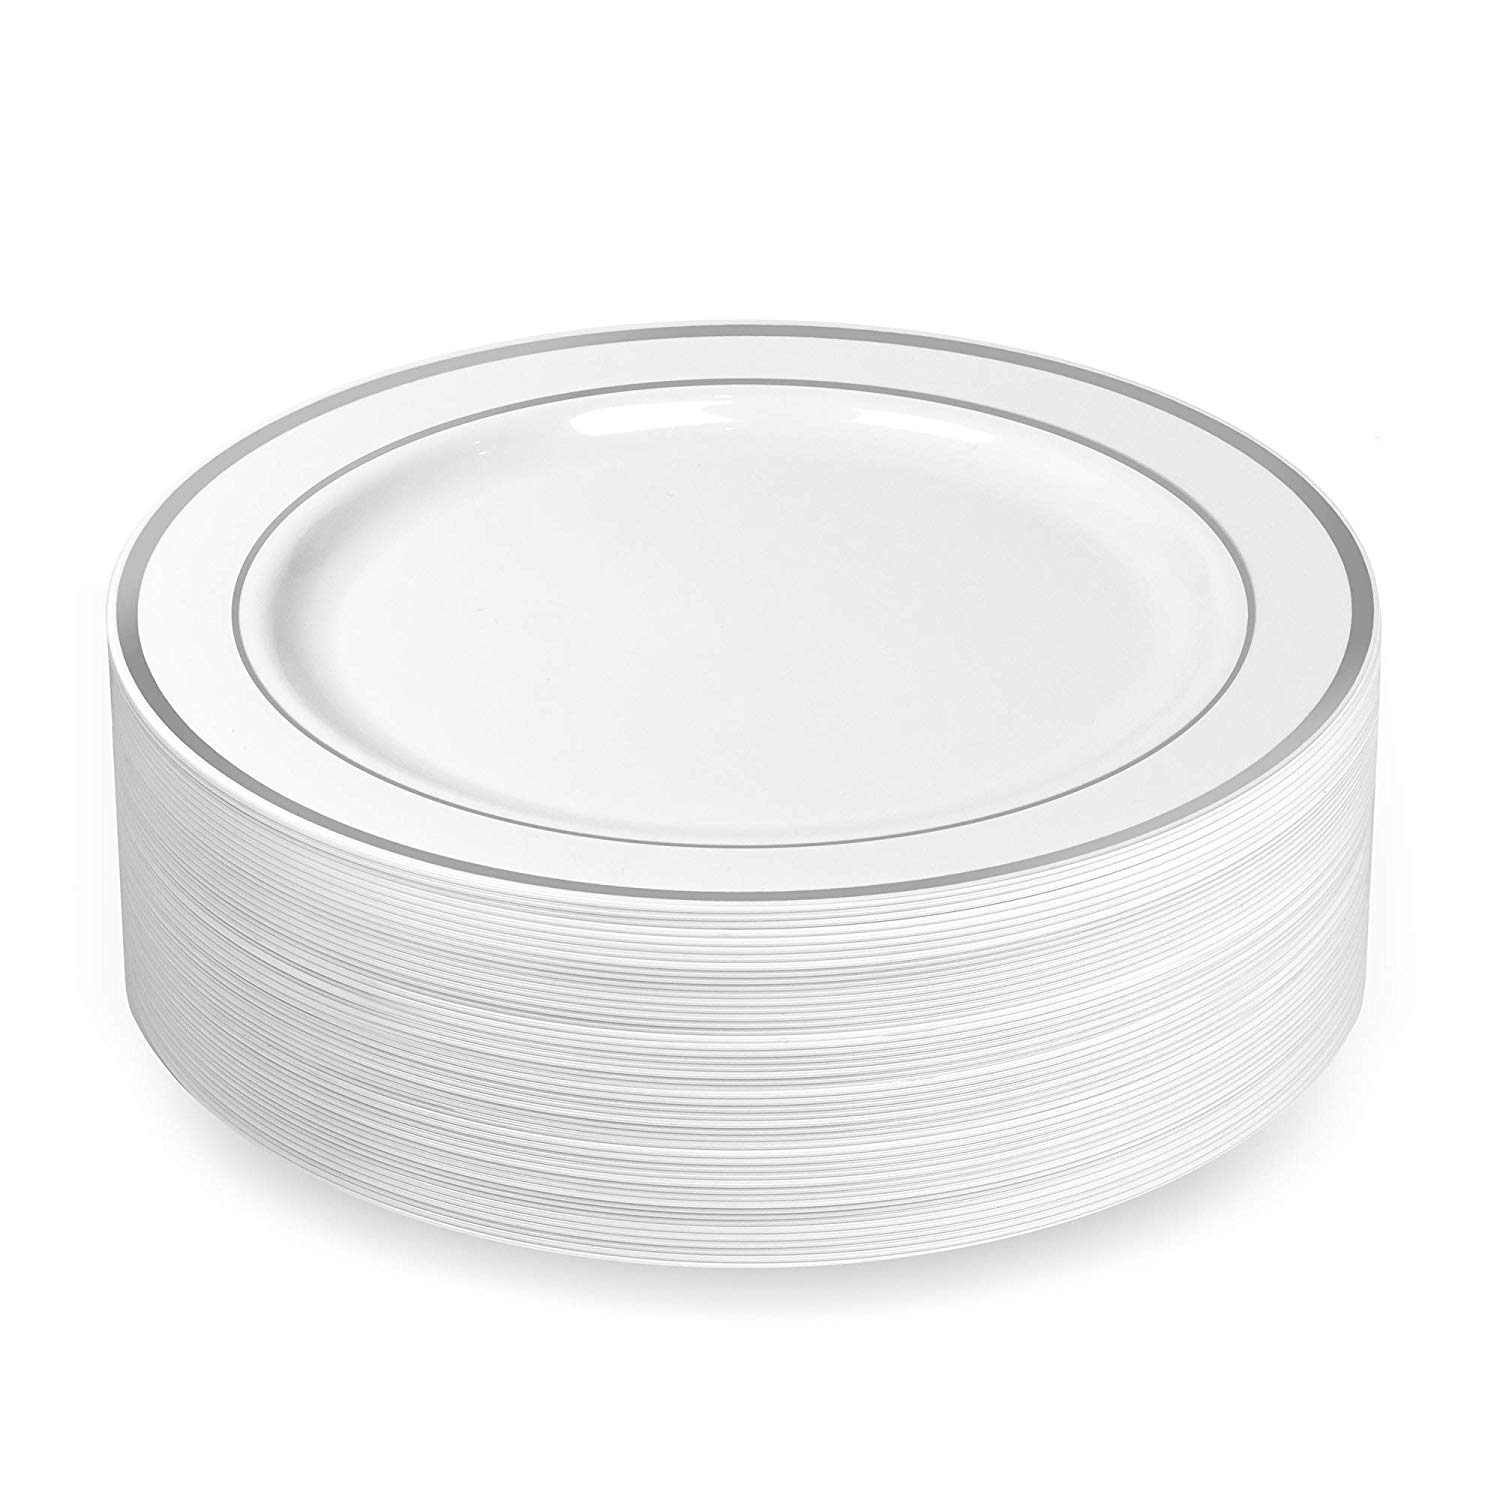 40 Plastic Disposable Dinner Plates